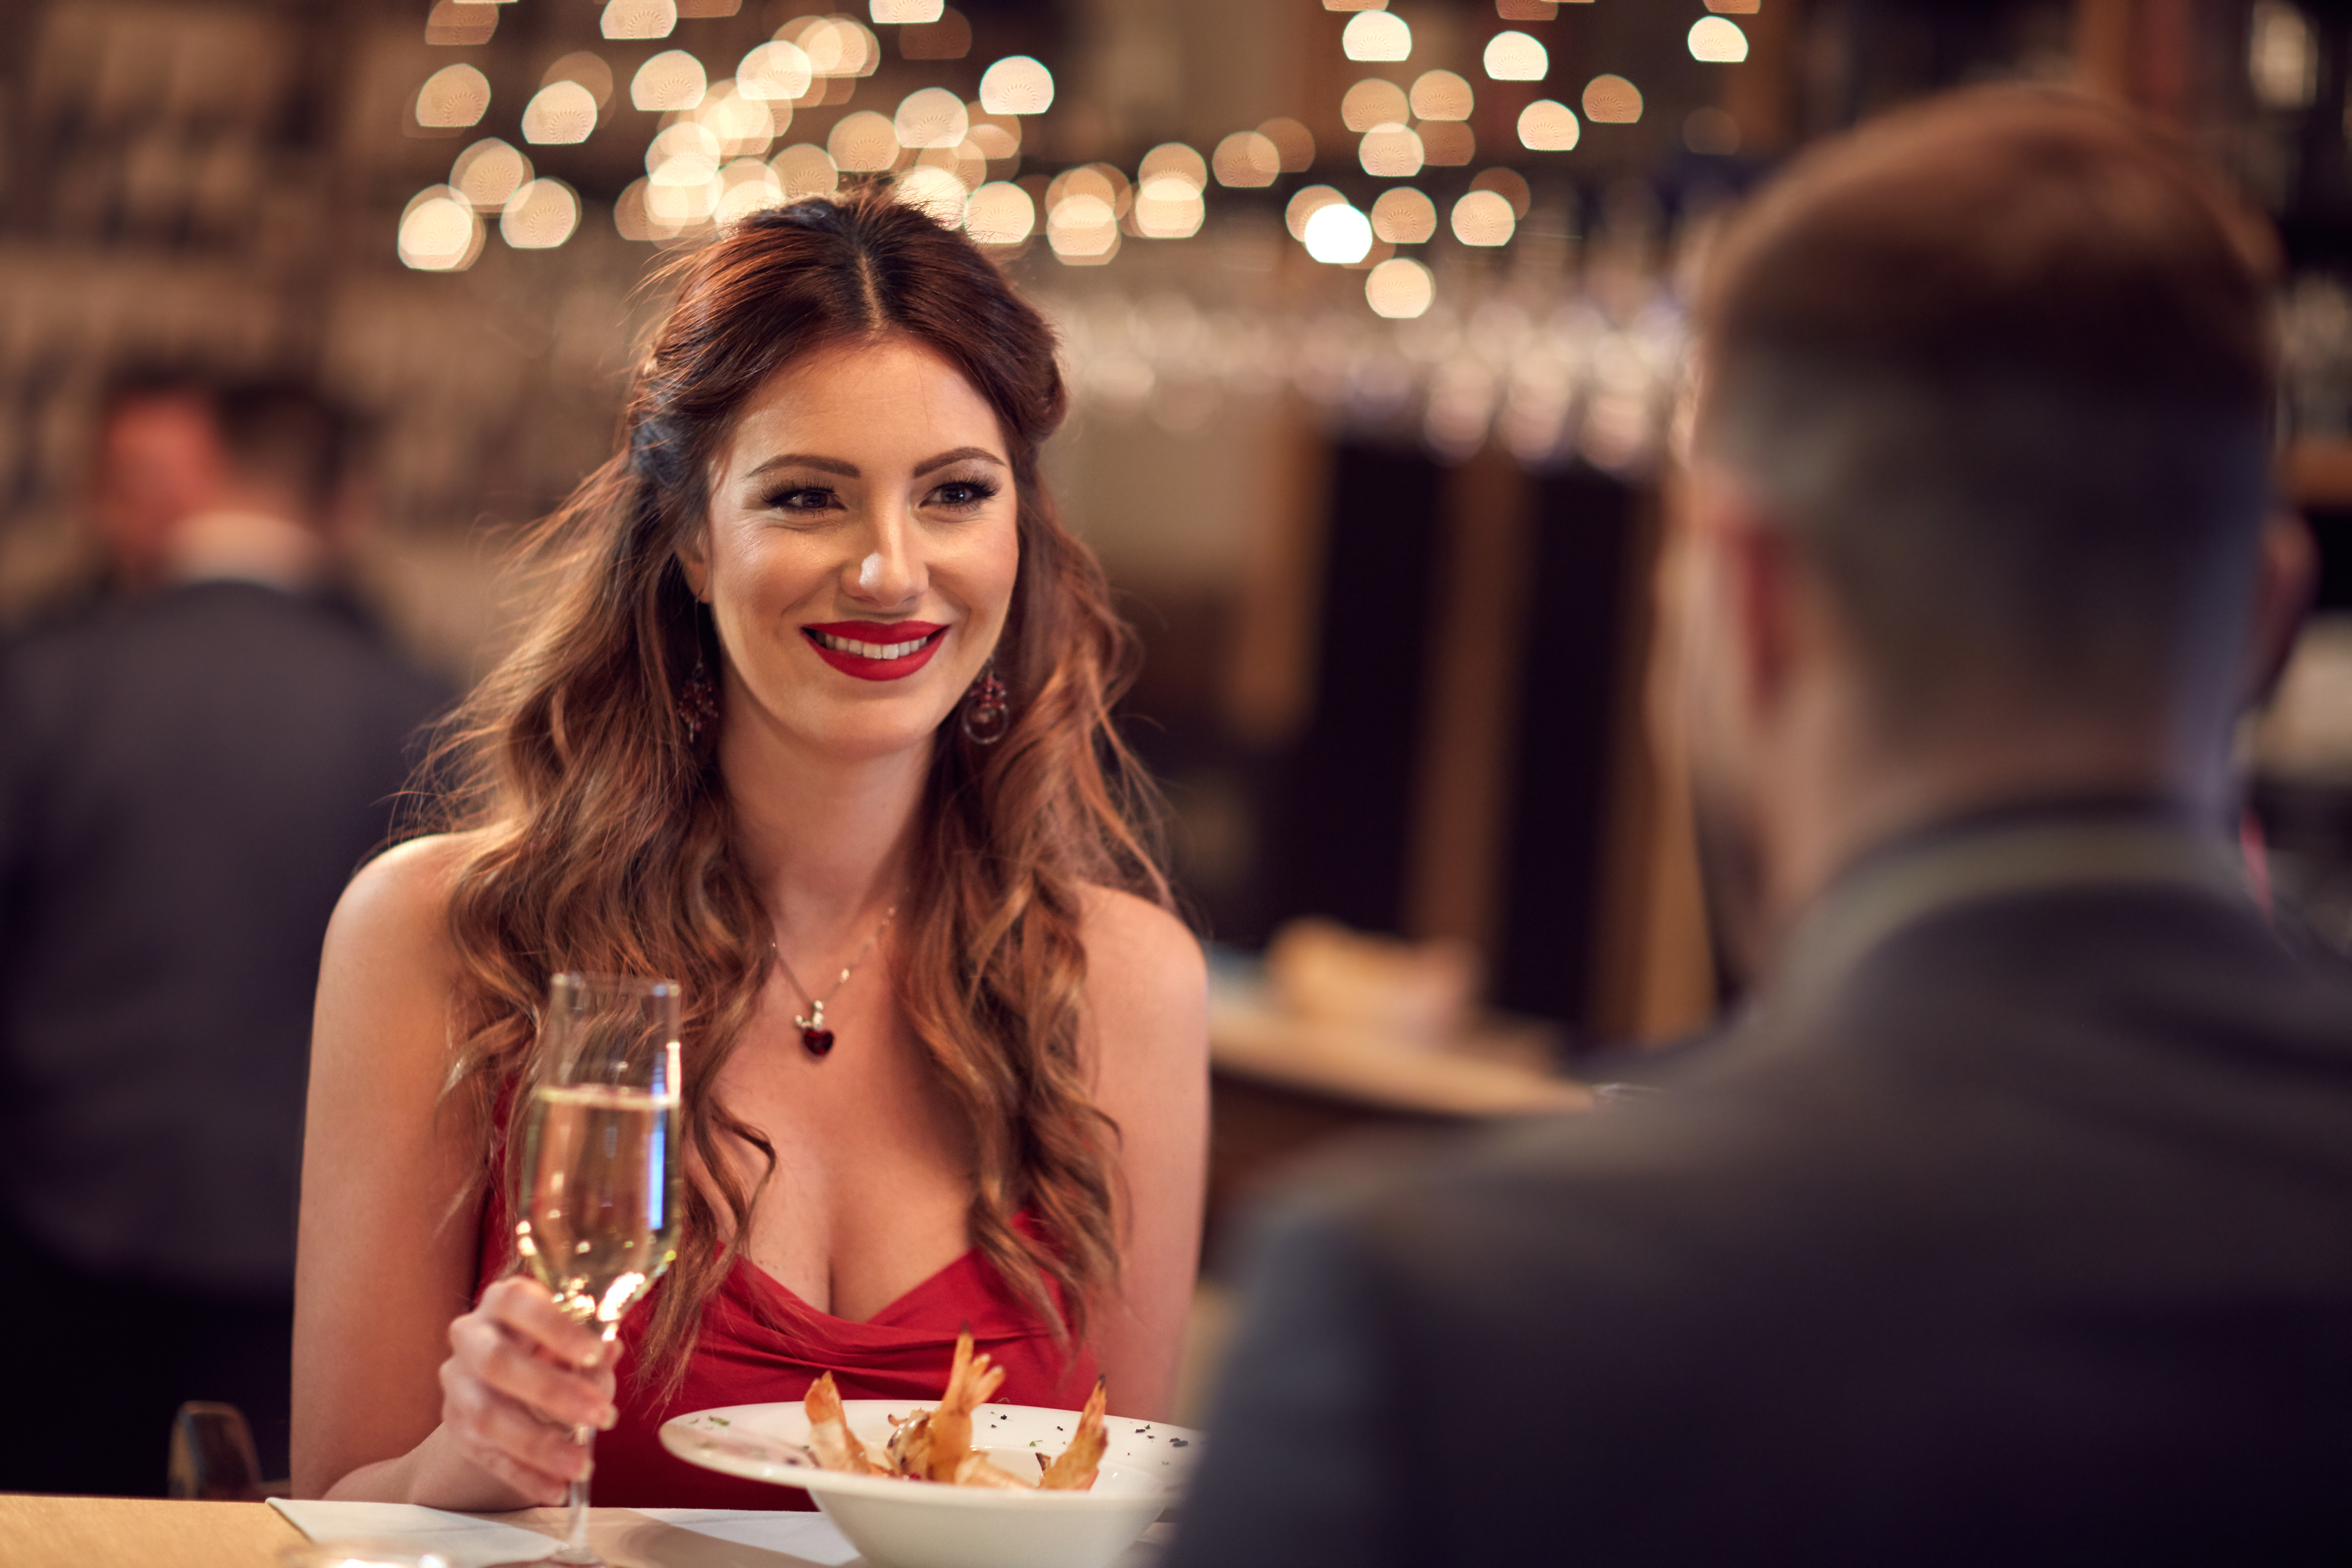 Online Dating: On A First Date, Is It A Good Idea To Provide Compliments On How She Looks Or What She Is Wearing?